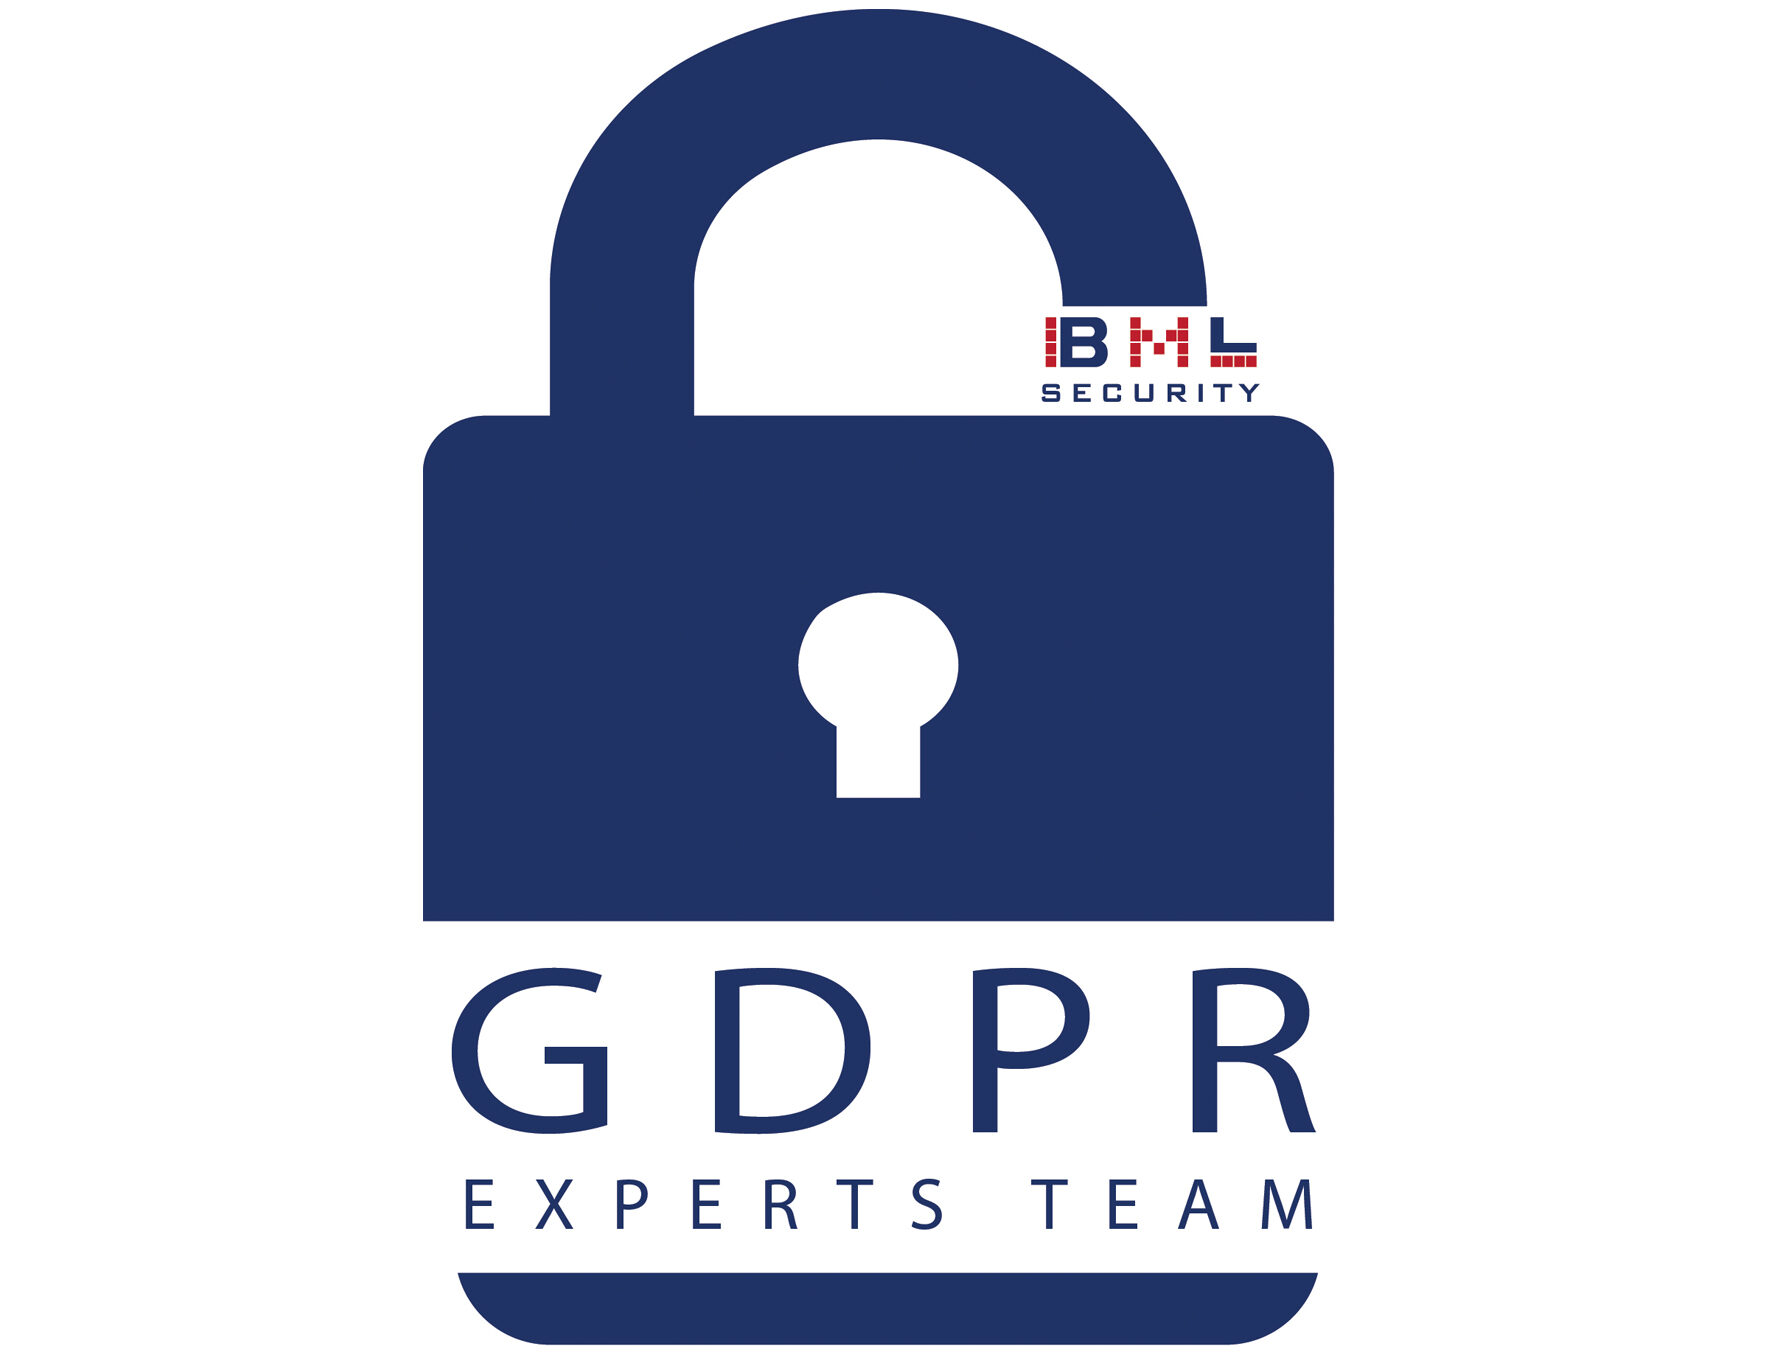 GDPR Experts Team